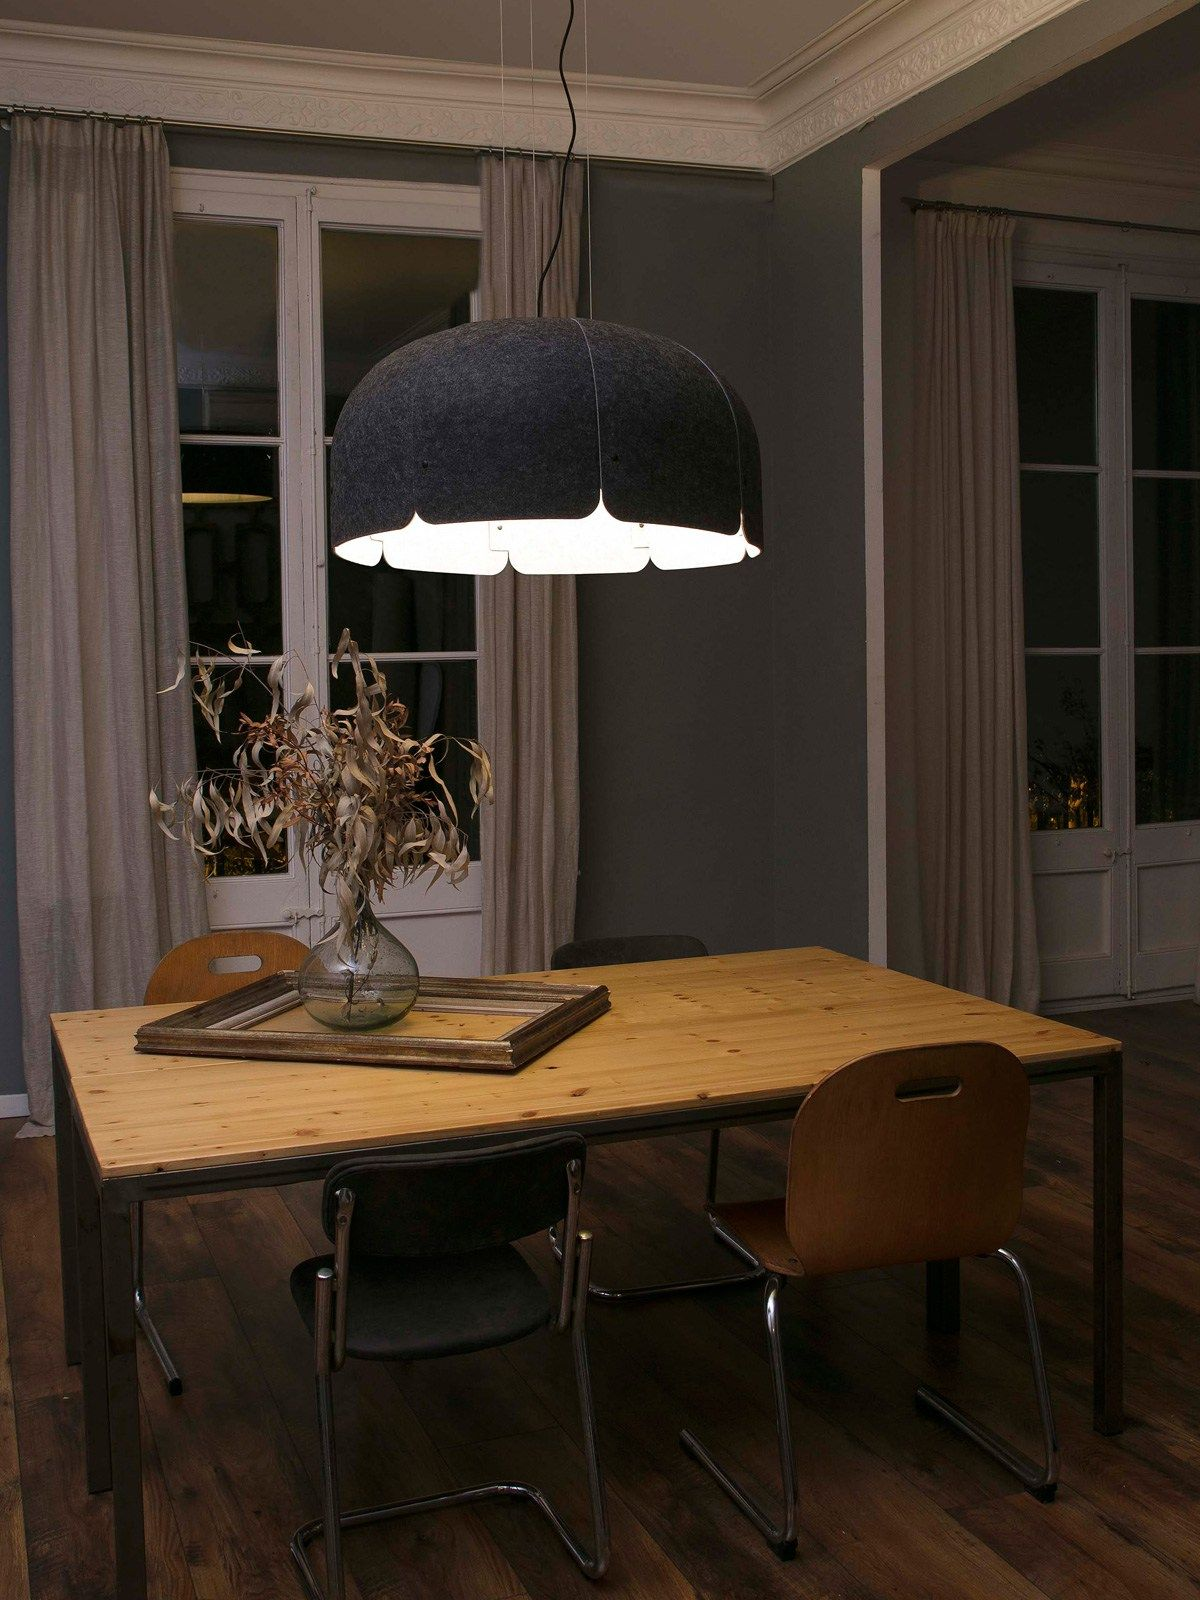 Led Küchenlampe Kchen Led Lampe Fabulous Vintage Lampshades Swag Light Hanging